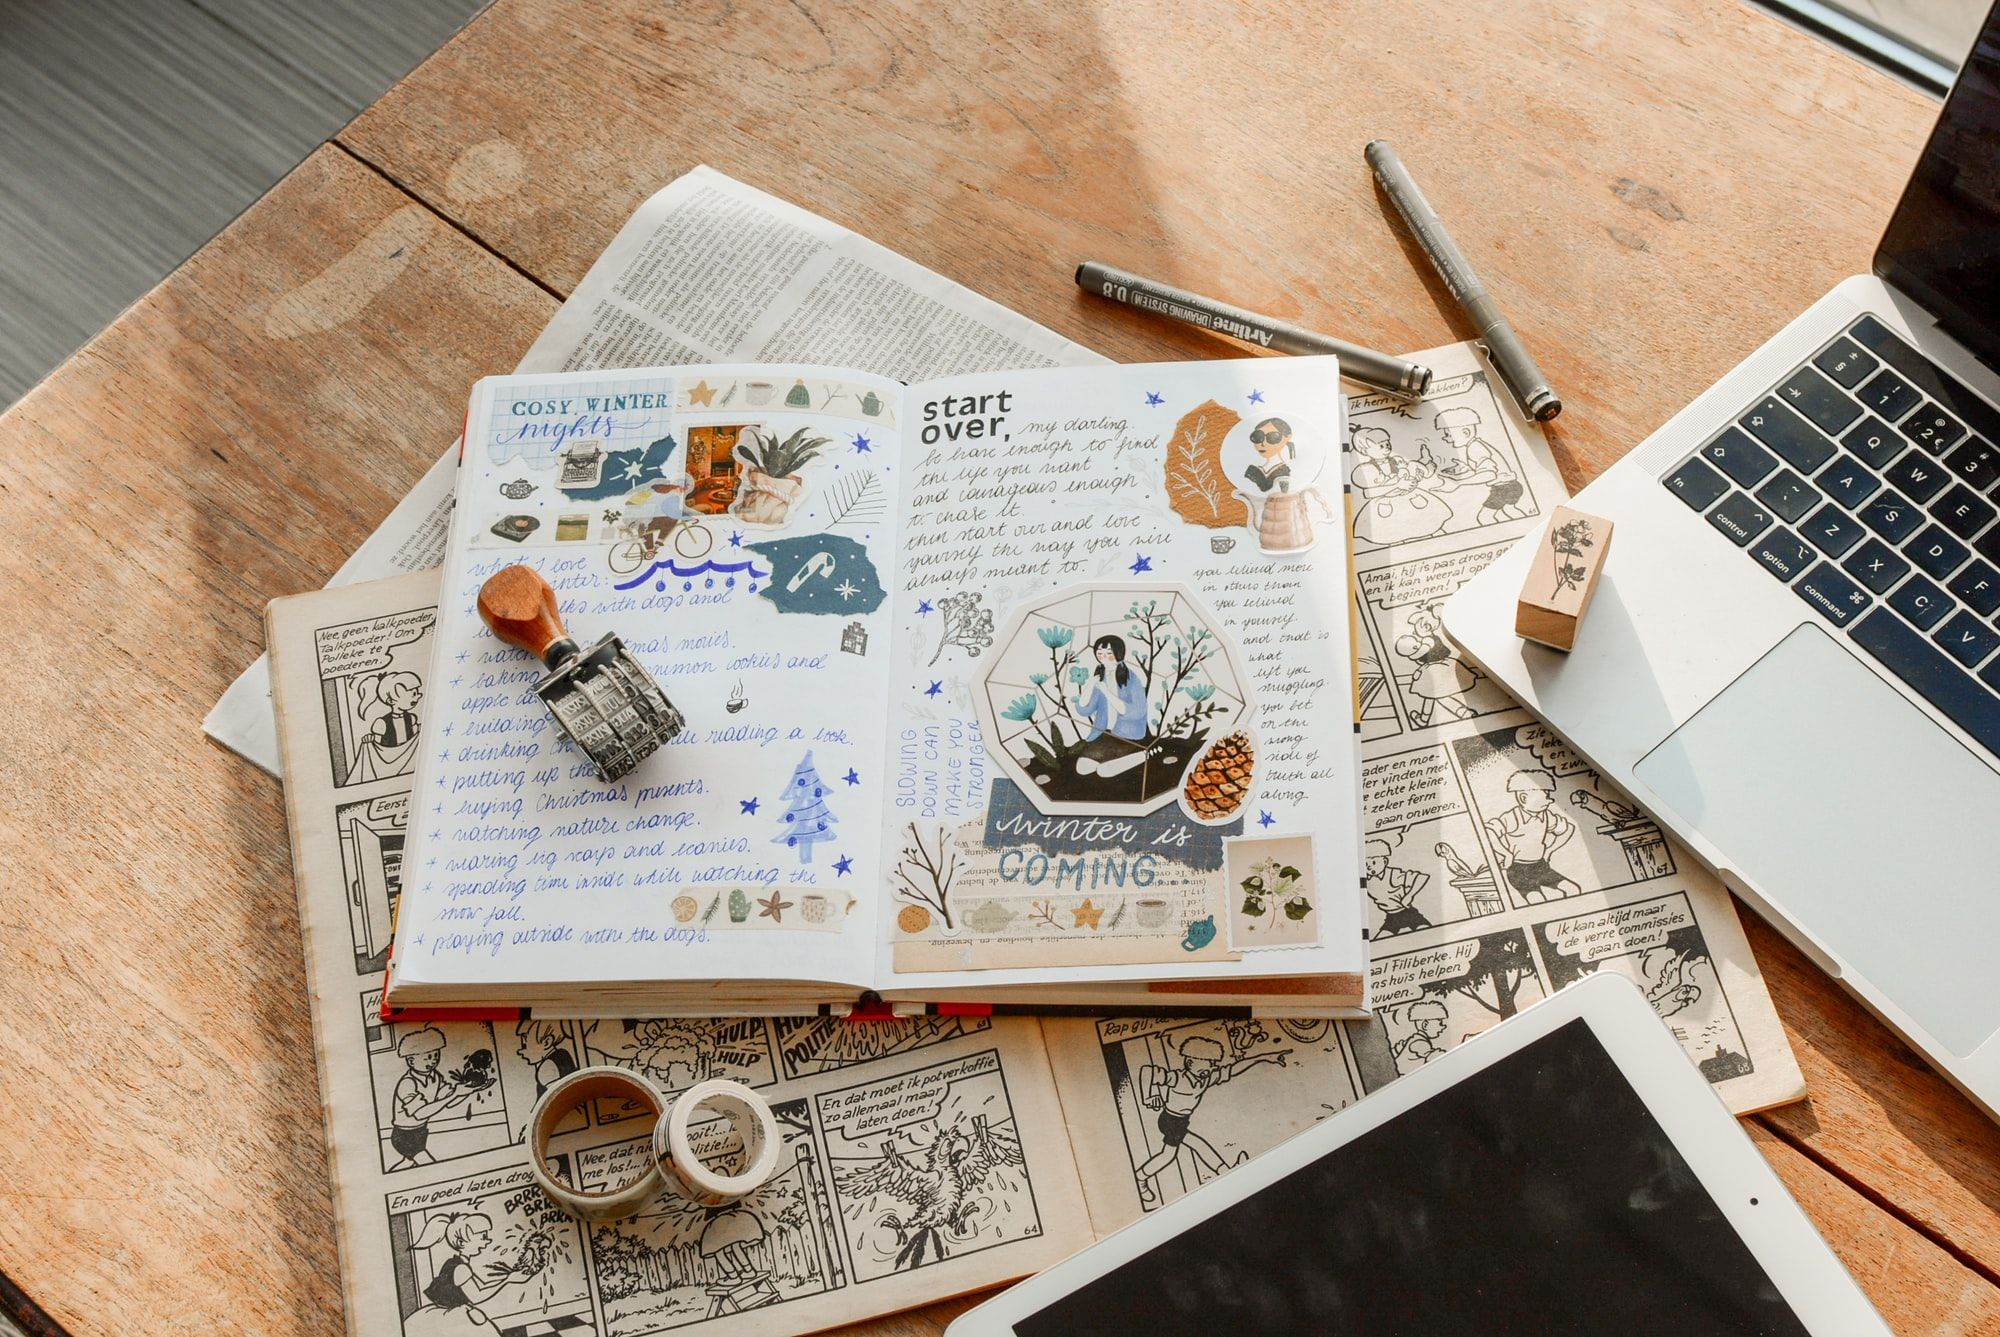 diary with decorated text and visual images